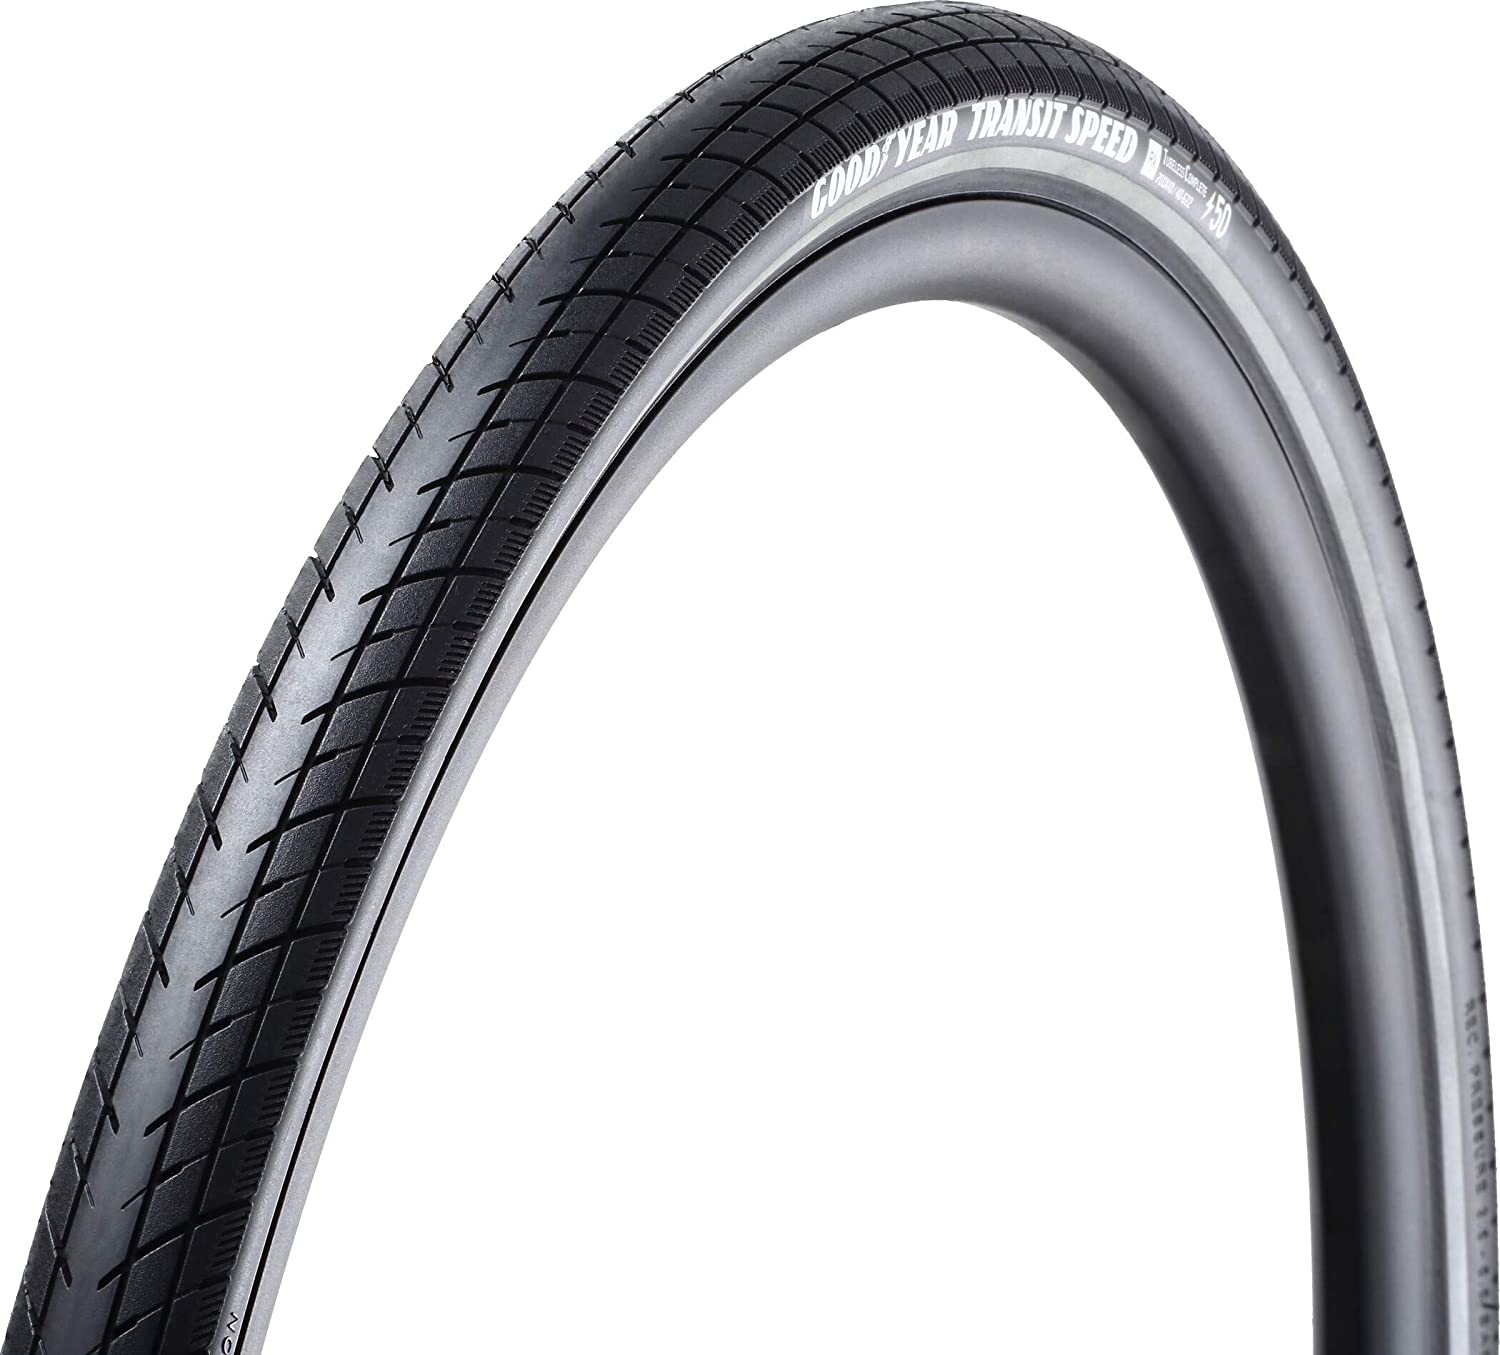 Goodyear Transit Speed Tire, 700x50C, Wire, Clincher, Dynamic:Silica4, S3: Shell, 60TPI, Black